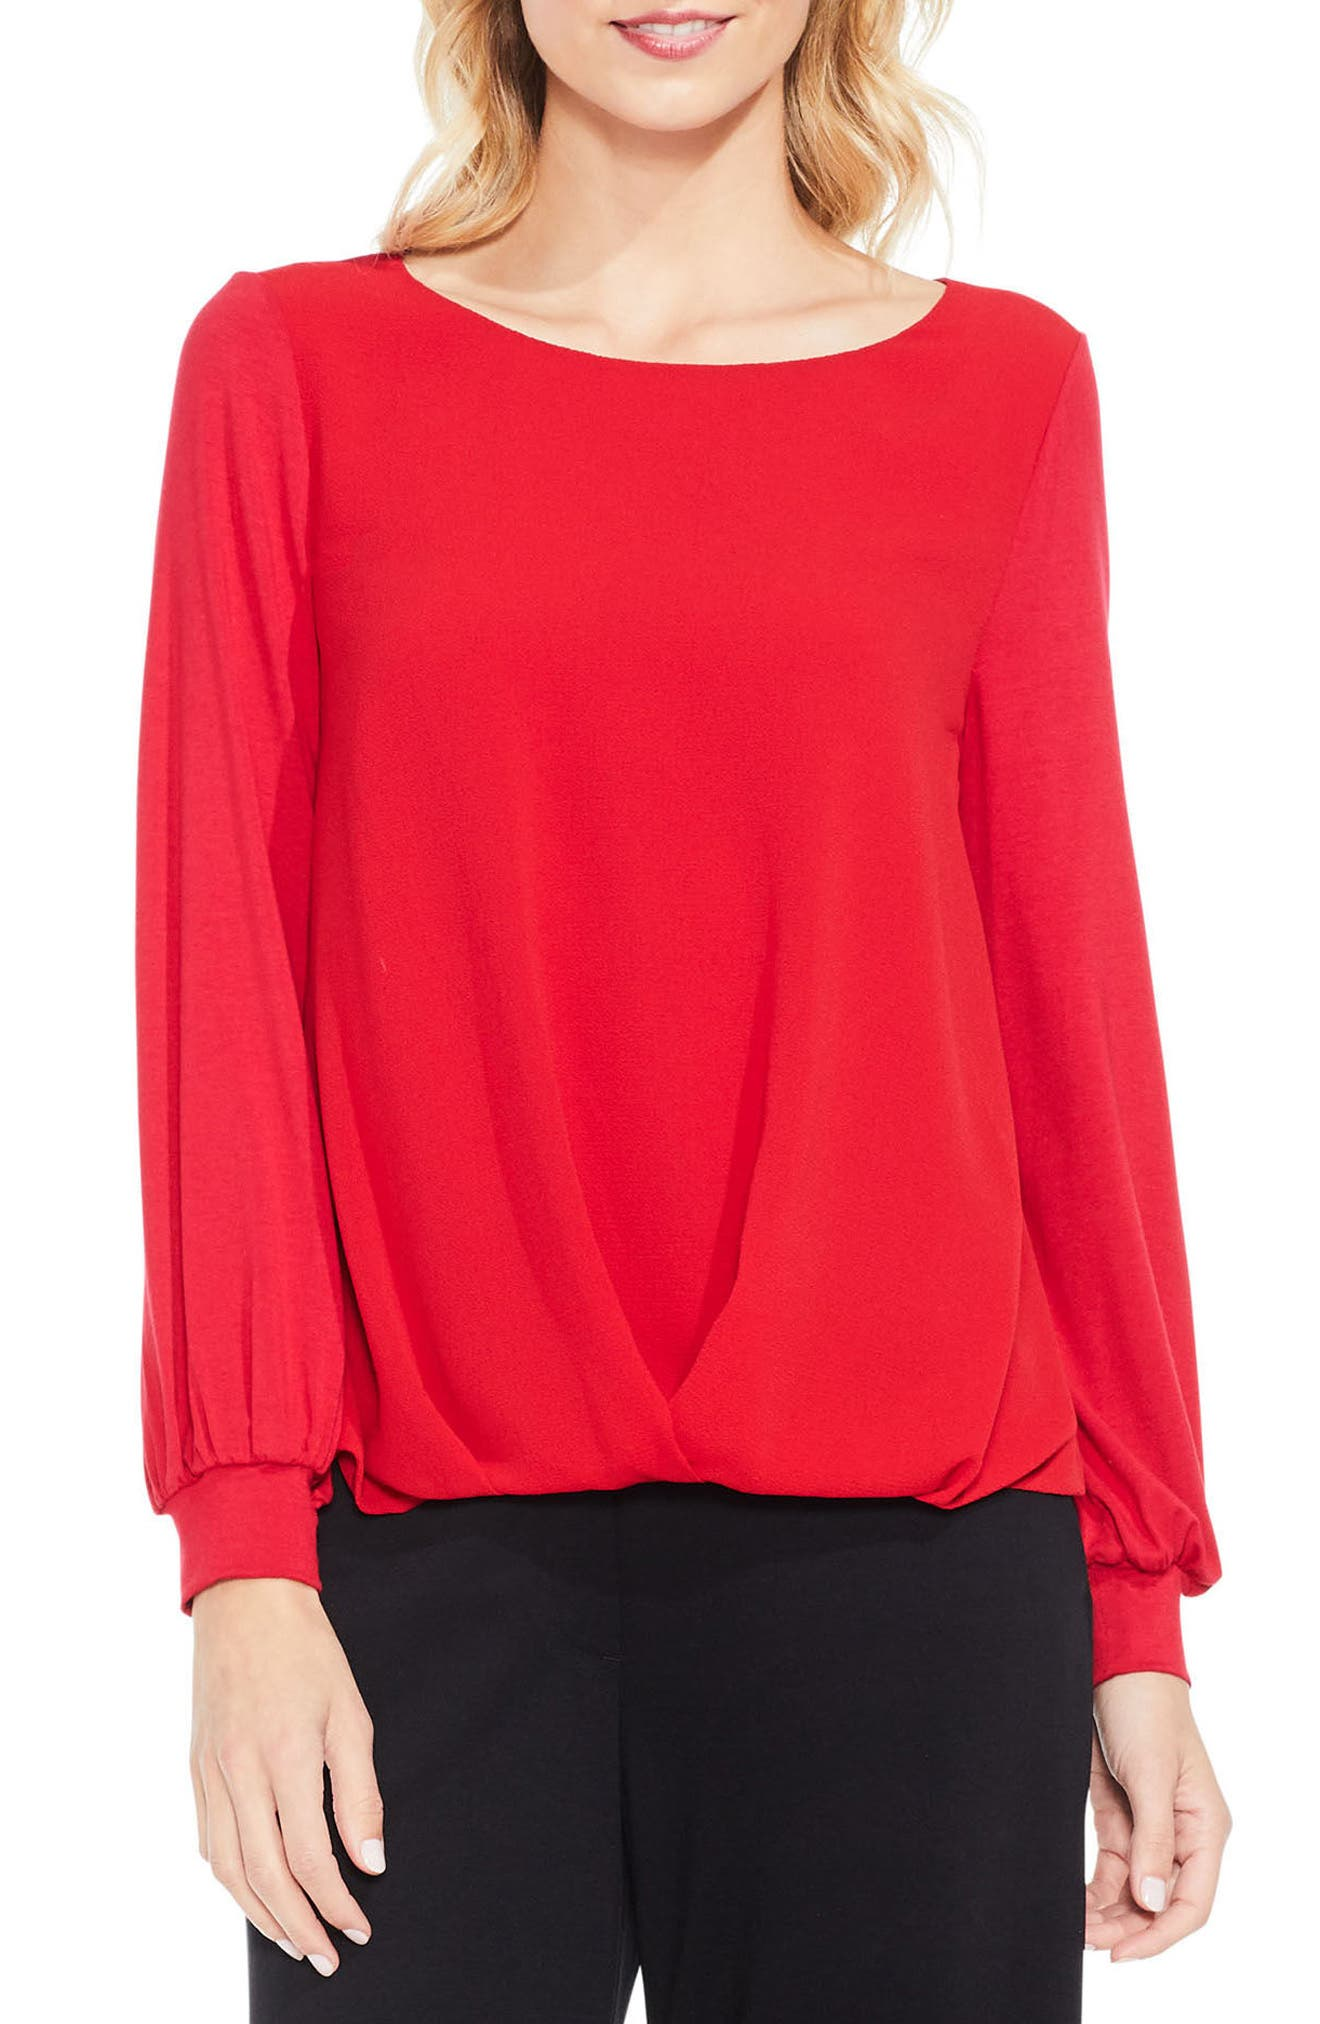 Main Image - Vince Camuto Long Sleeve Foldover Mix Media Blouse